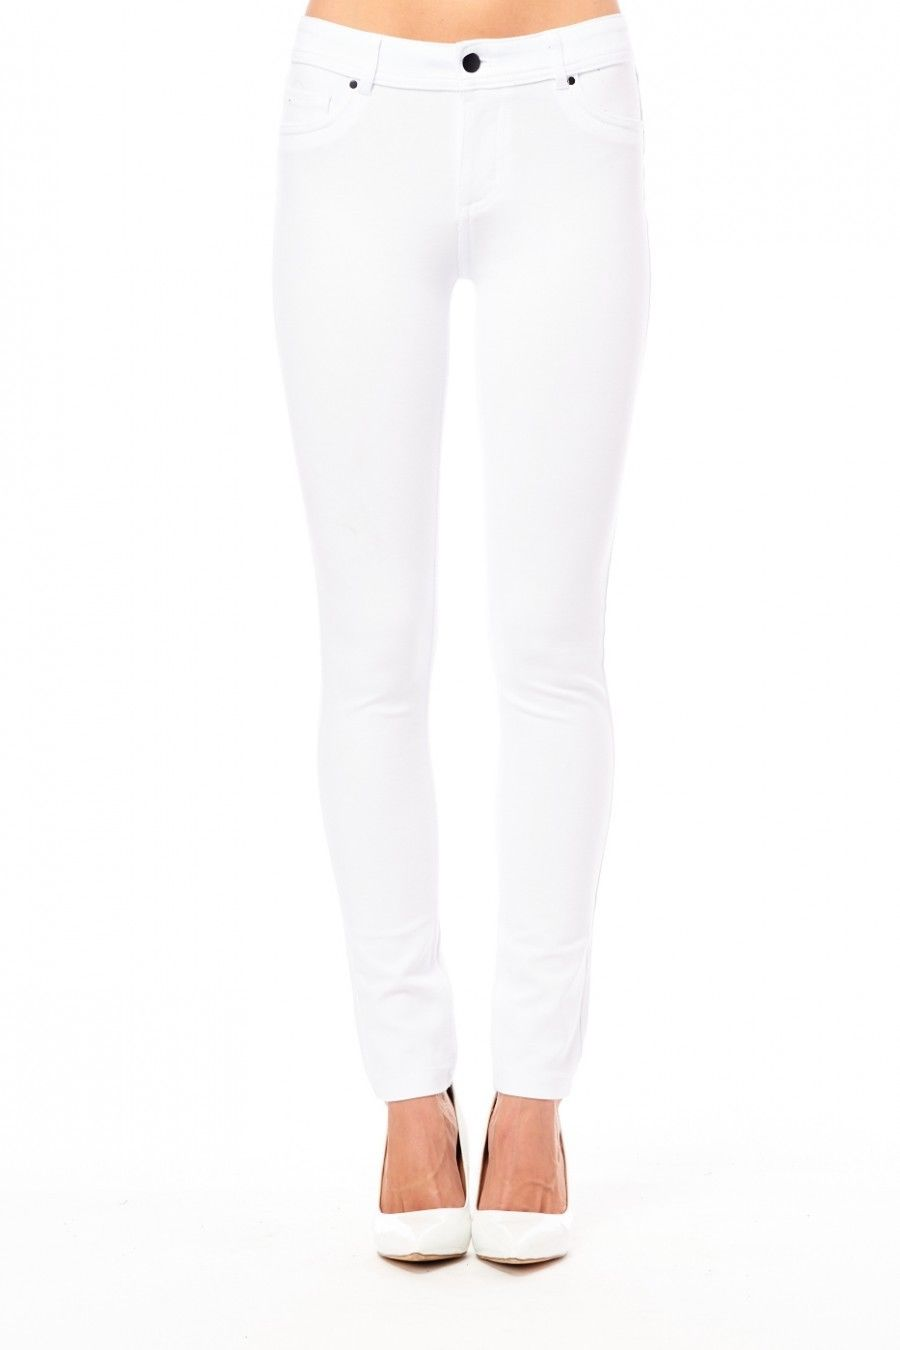 Womens Solid Reform Basic Classic Soft Shaping Jegging Pants 611S (S, White)